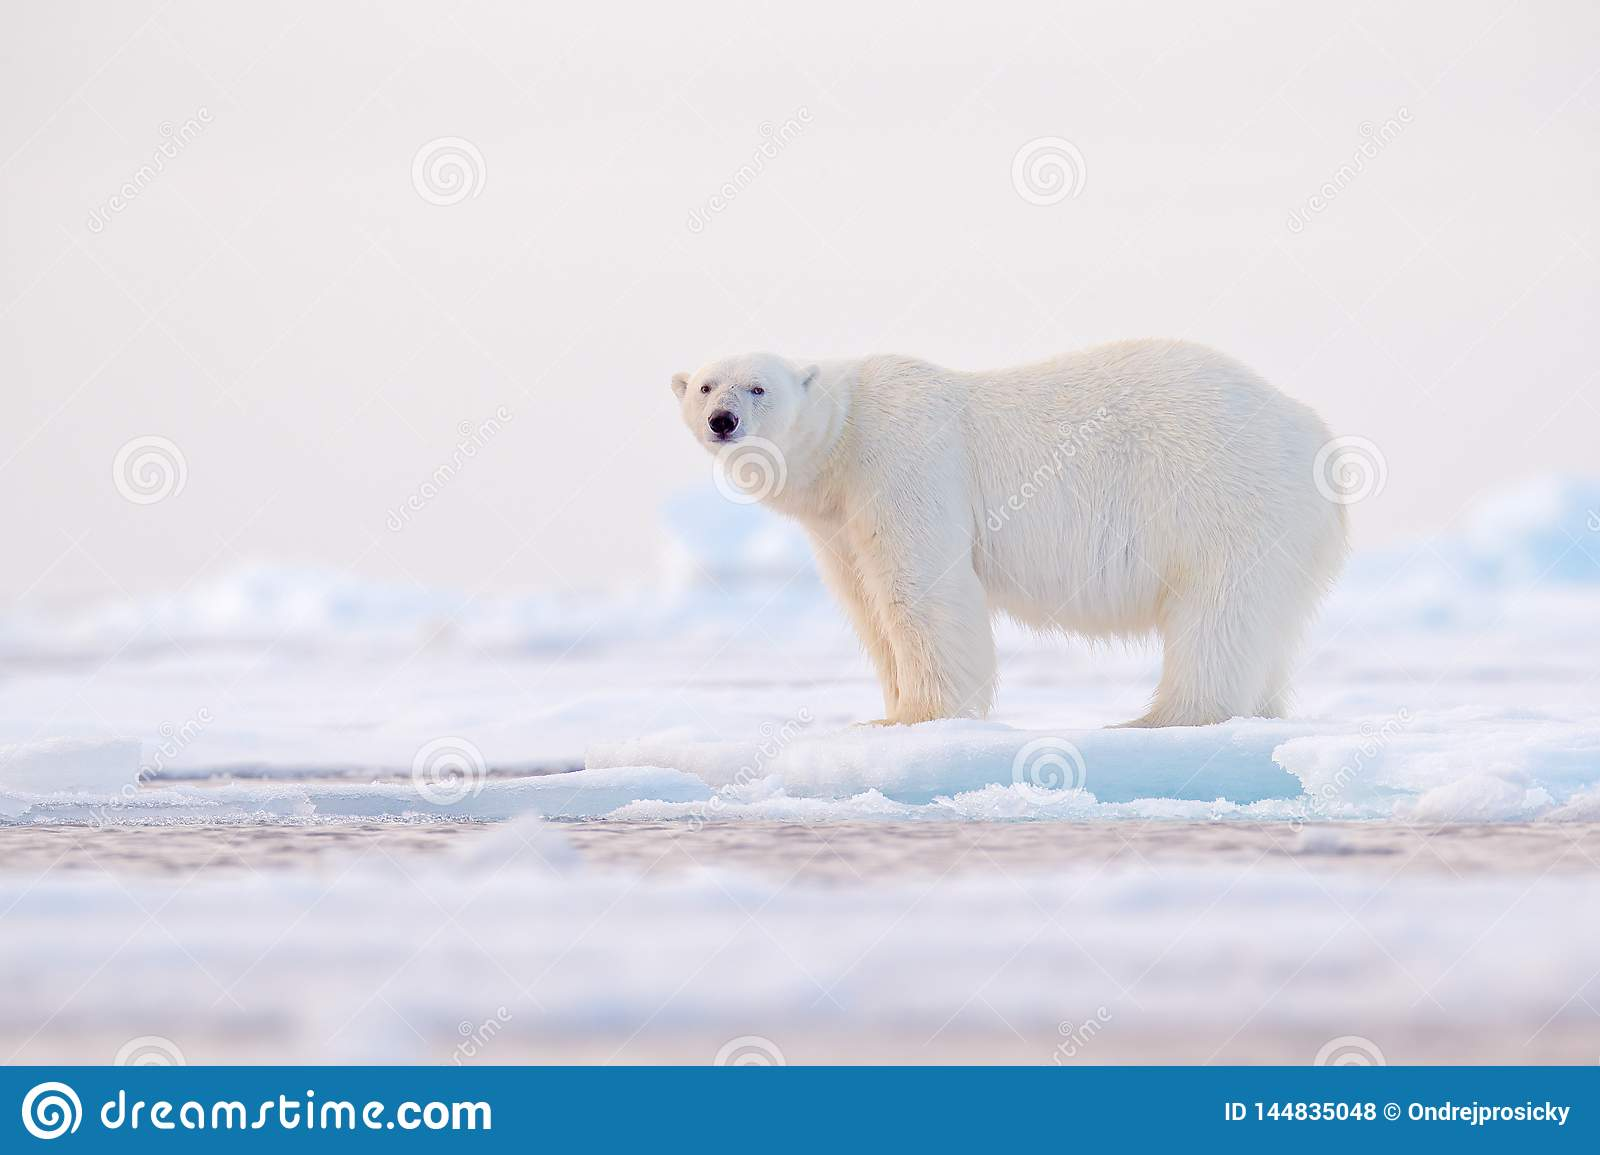 Polar bear on drift ice edge with snow and water in Norway sea. White animal in the nature habitat, Svalbard, Europe. Wildlife